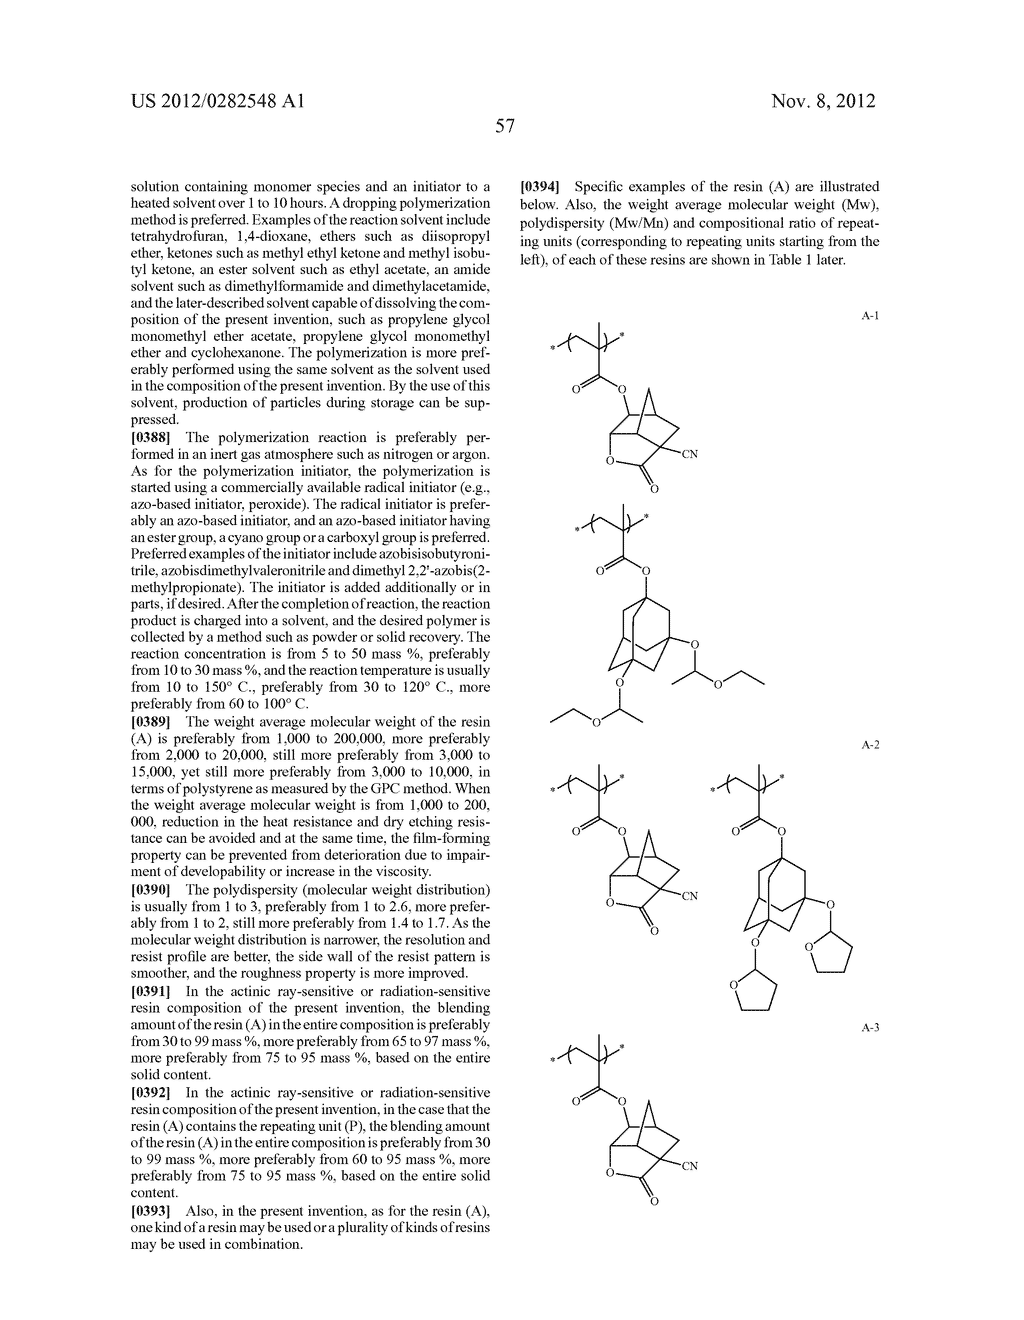 PATTERN FORMING METHOD, ACTINIC RAY-SENSITIVE OR RADIATION-SENSITIVE RESIN     COMPOSITION AND RESIST FILM - diagram, schematic, and image 58